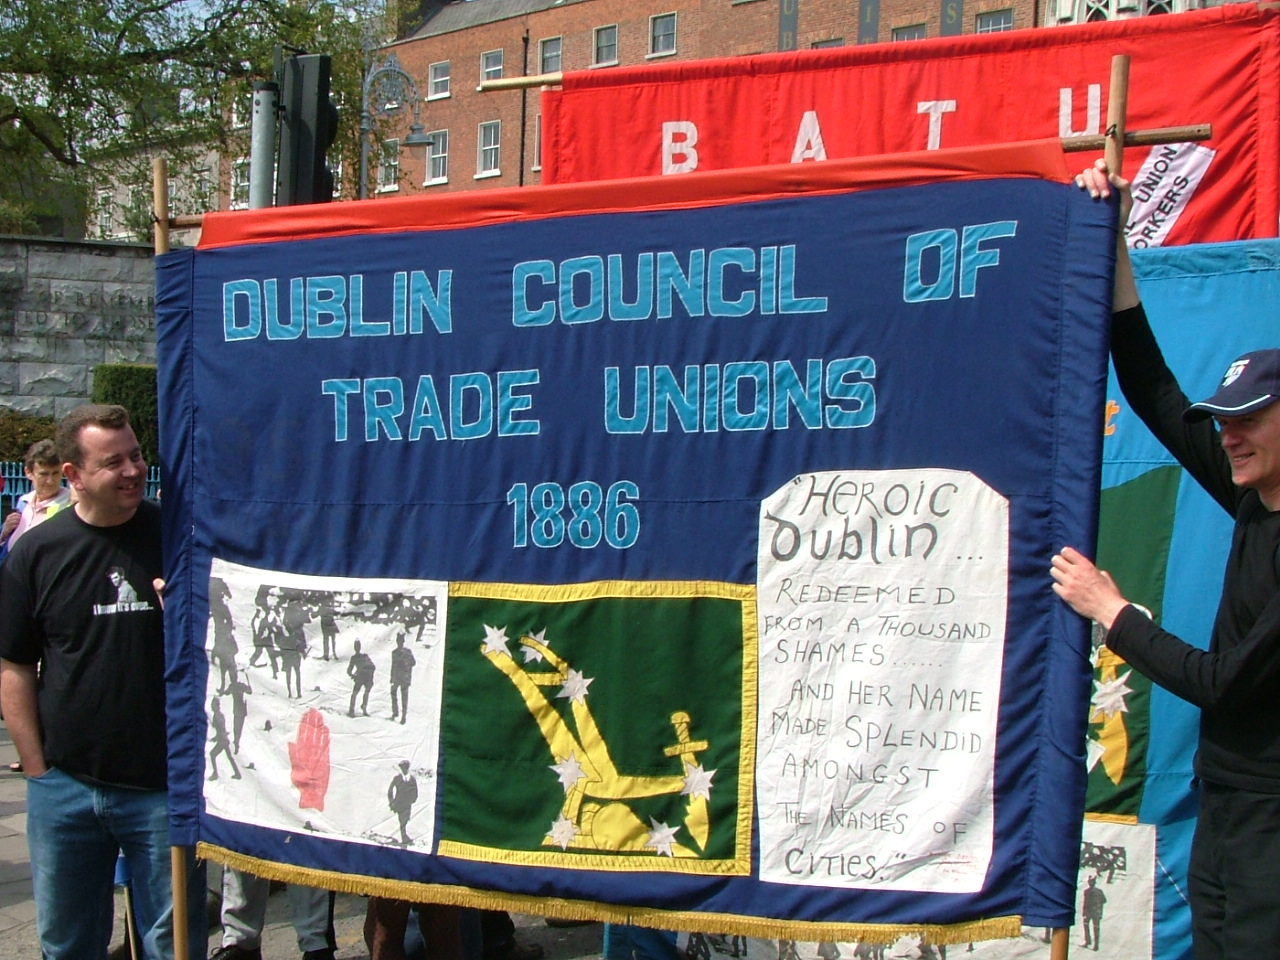 Trade unions: Not dead yet